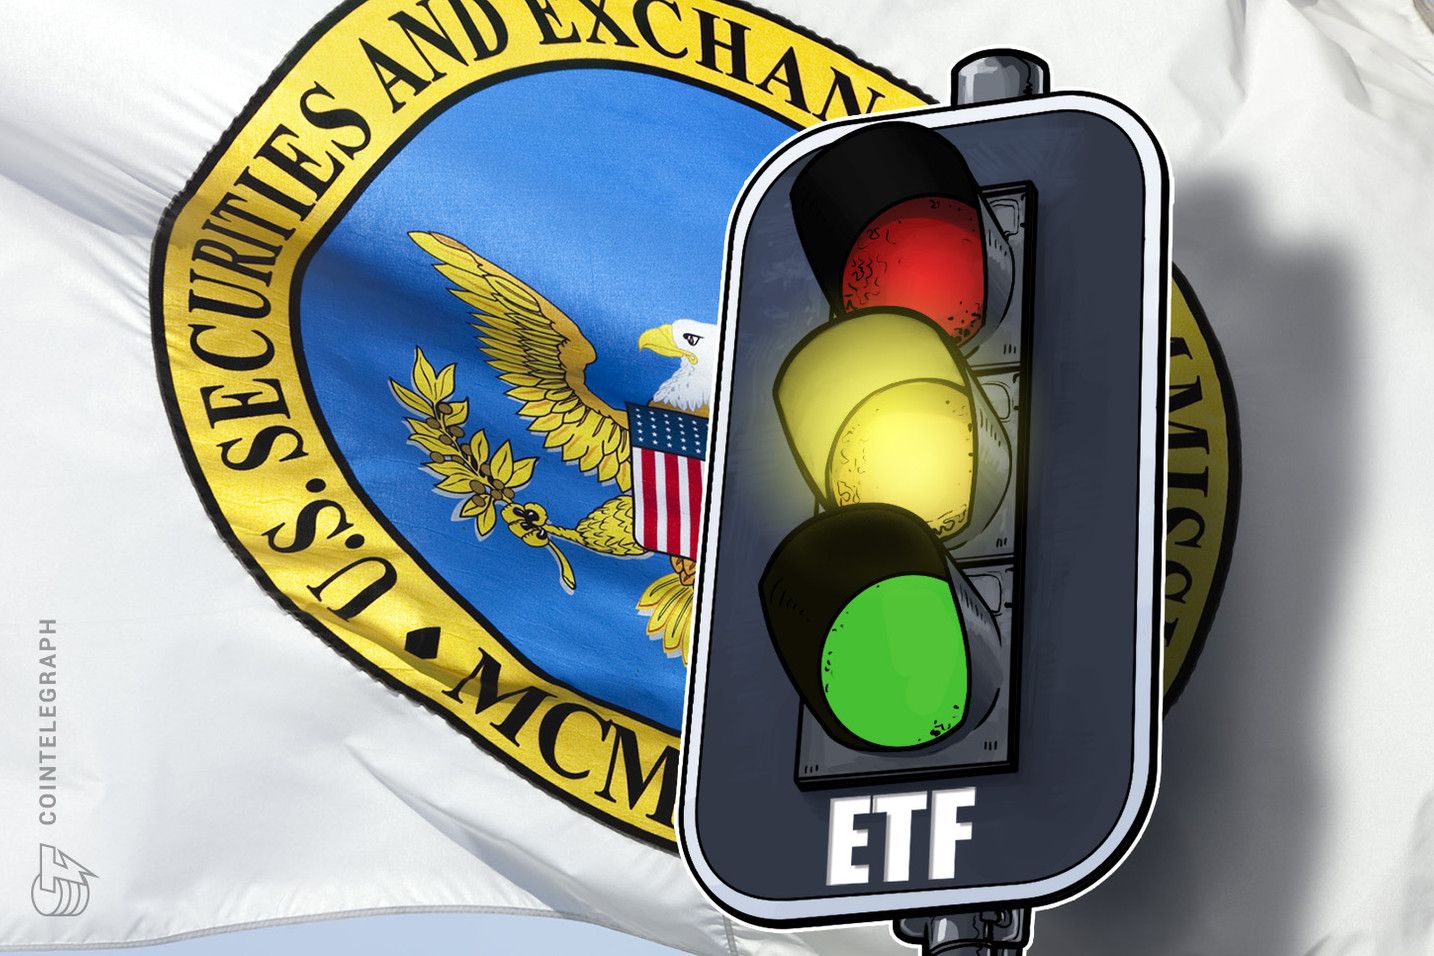 CNBC's Analyst Brian Kelly Says Bitcoin ETF Approval Likely by February 2019